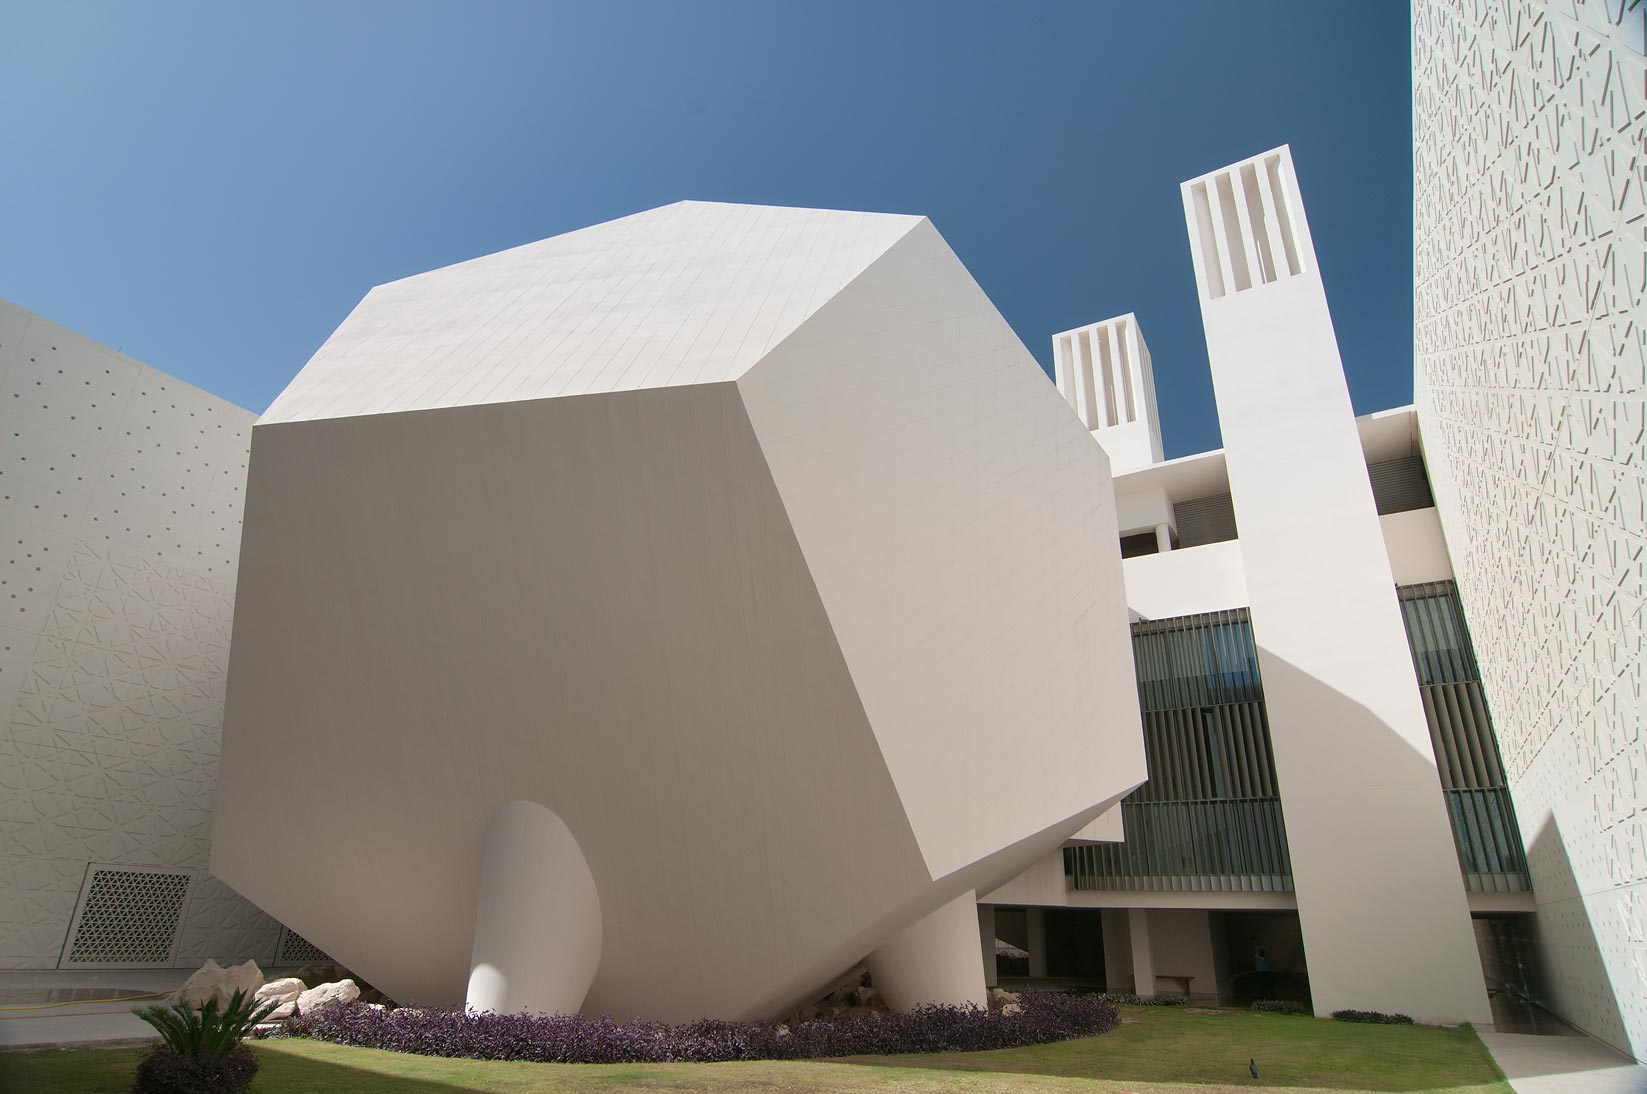 Dodecahedron lecture hall of Weill Cornell Medical College in Education City. Doha, Qatar